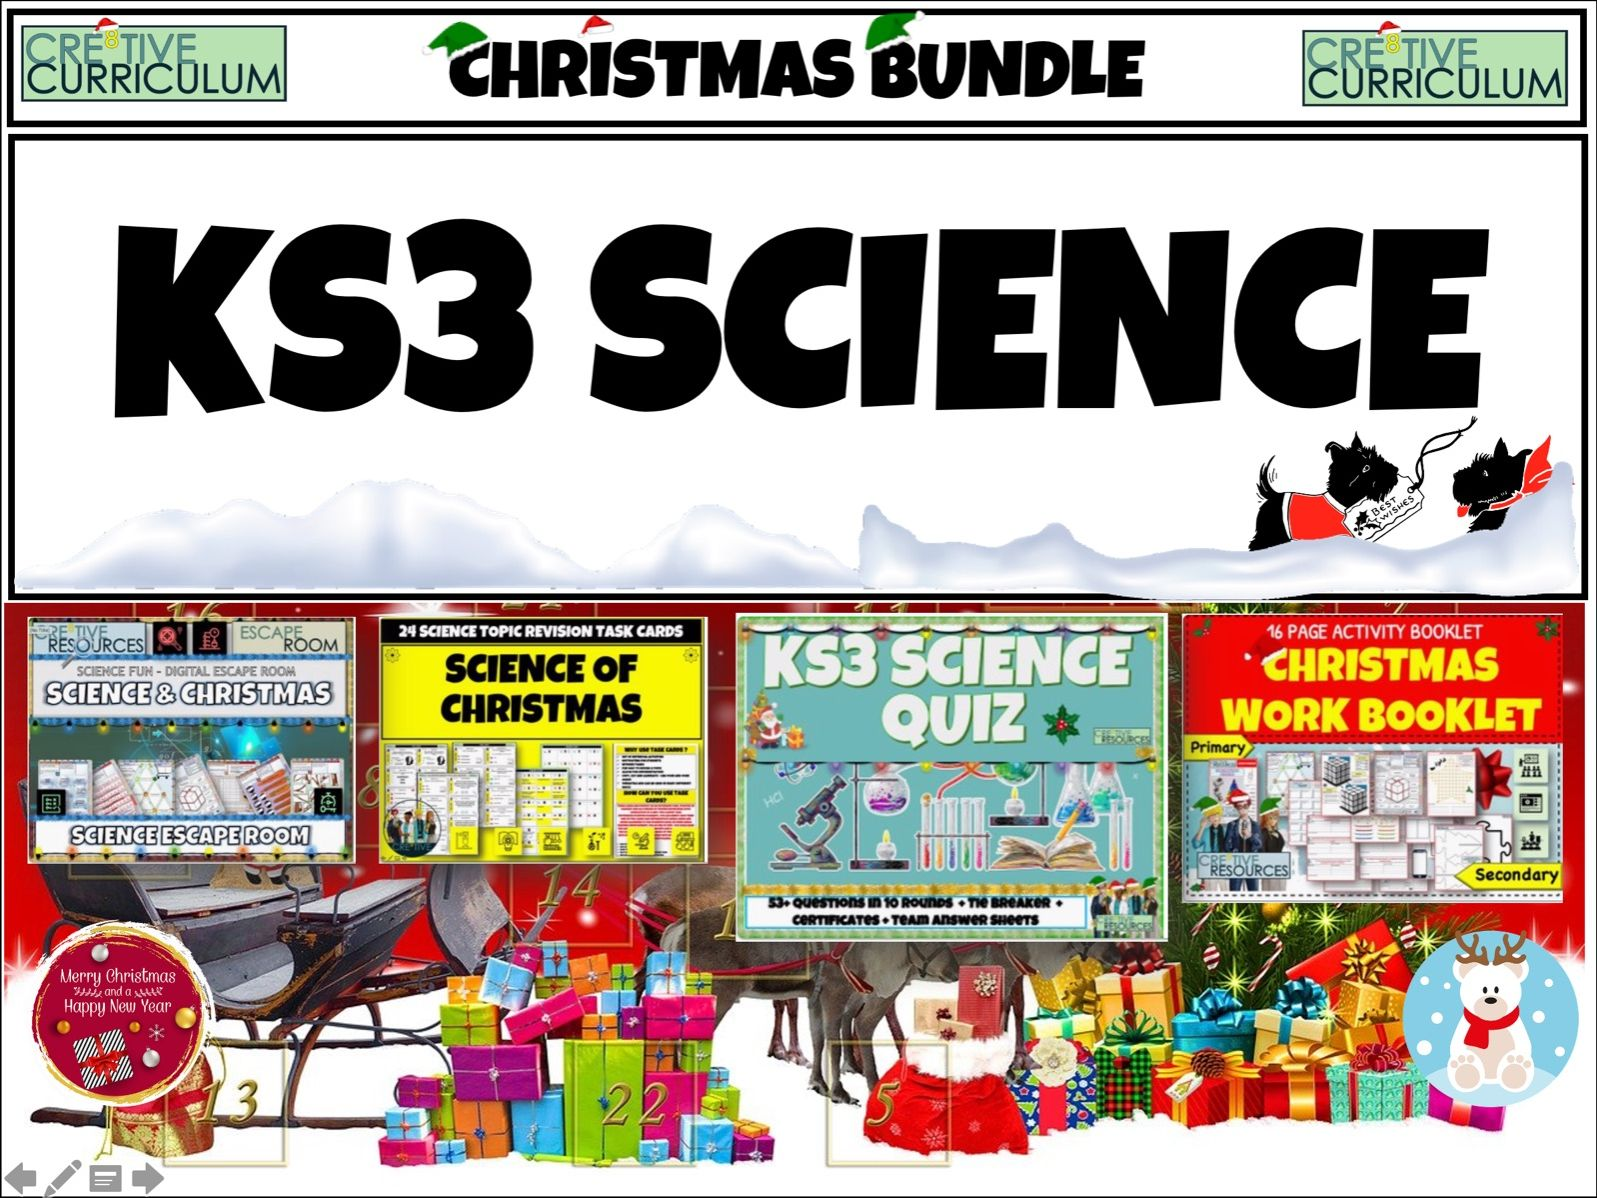 KS3 Science Christmas Bundle